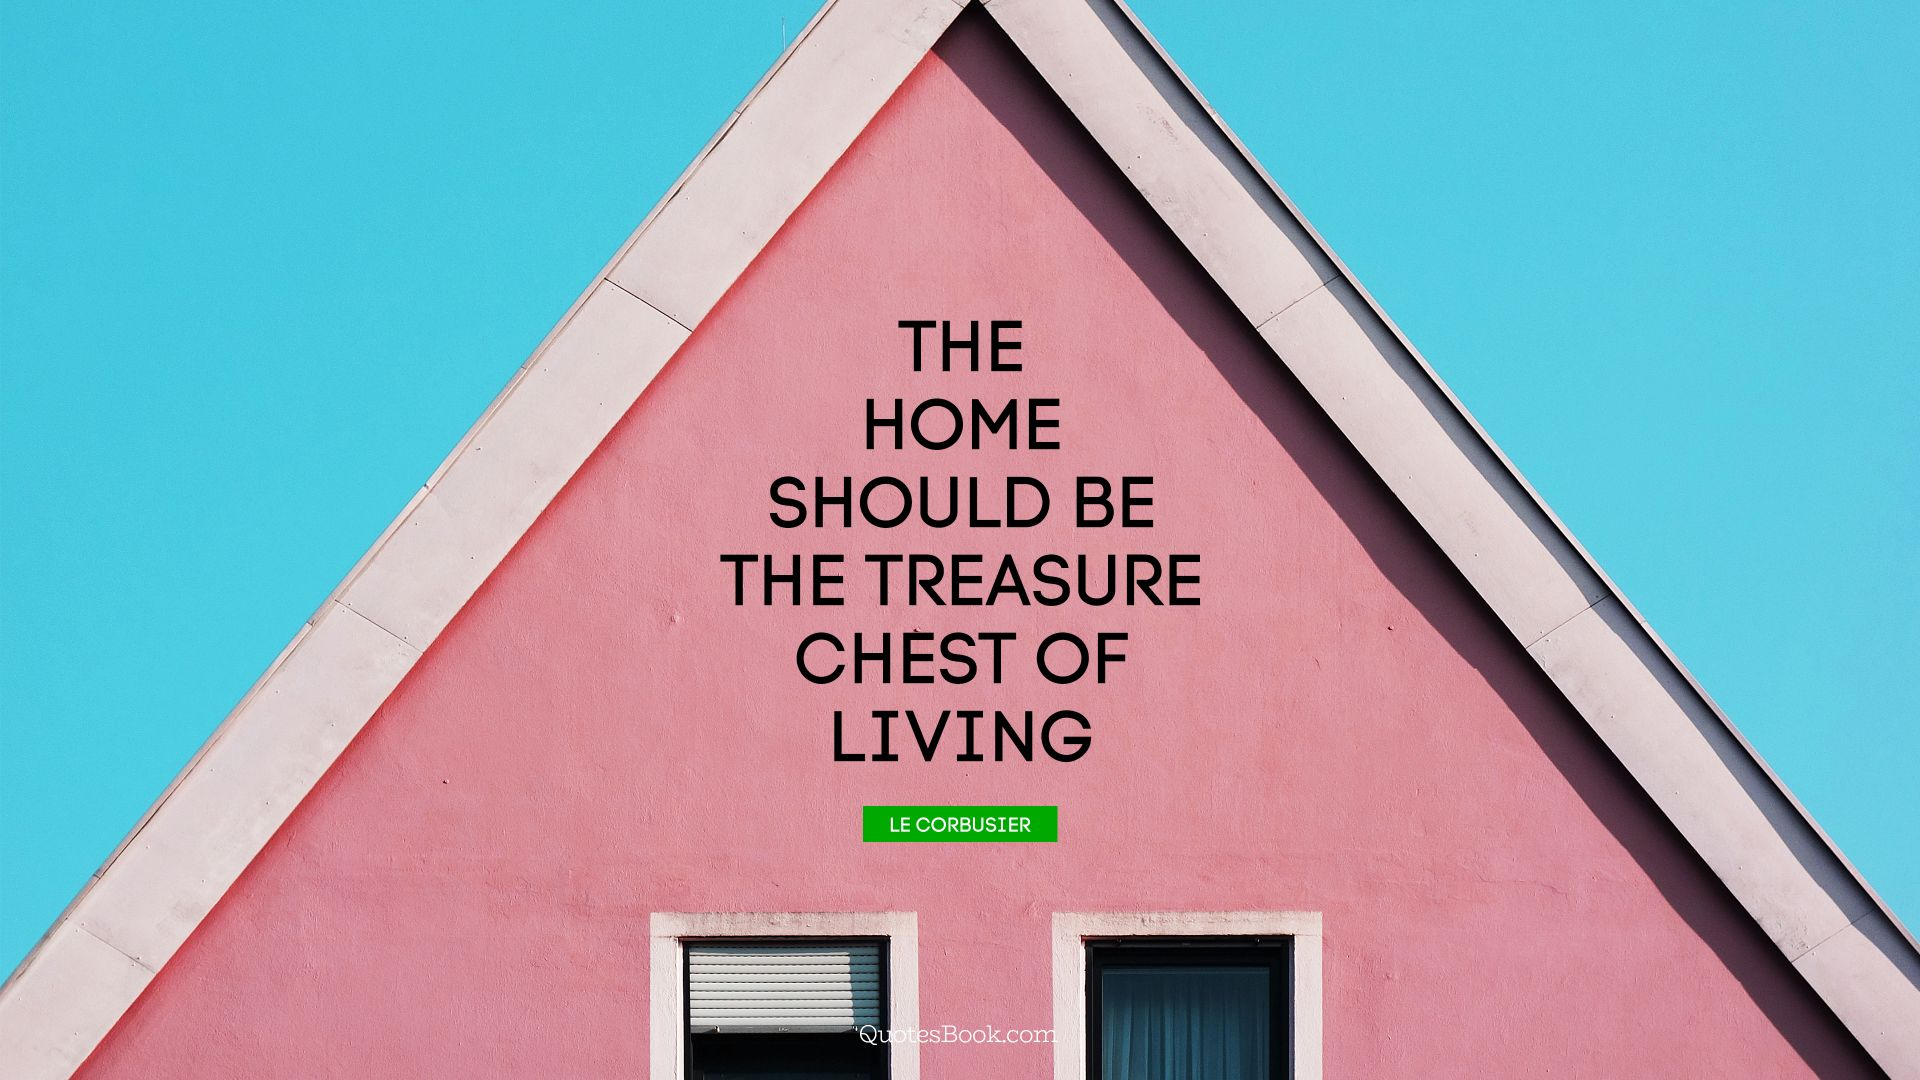 The home should be the treasure chest of living. - Quote by Le Corbusier